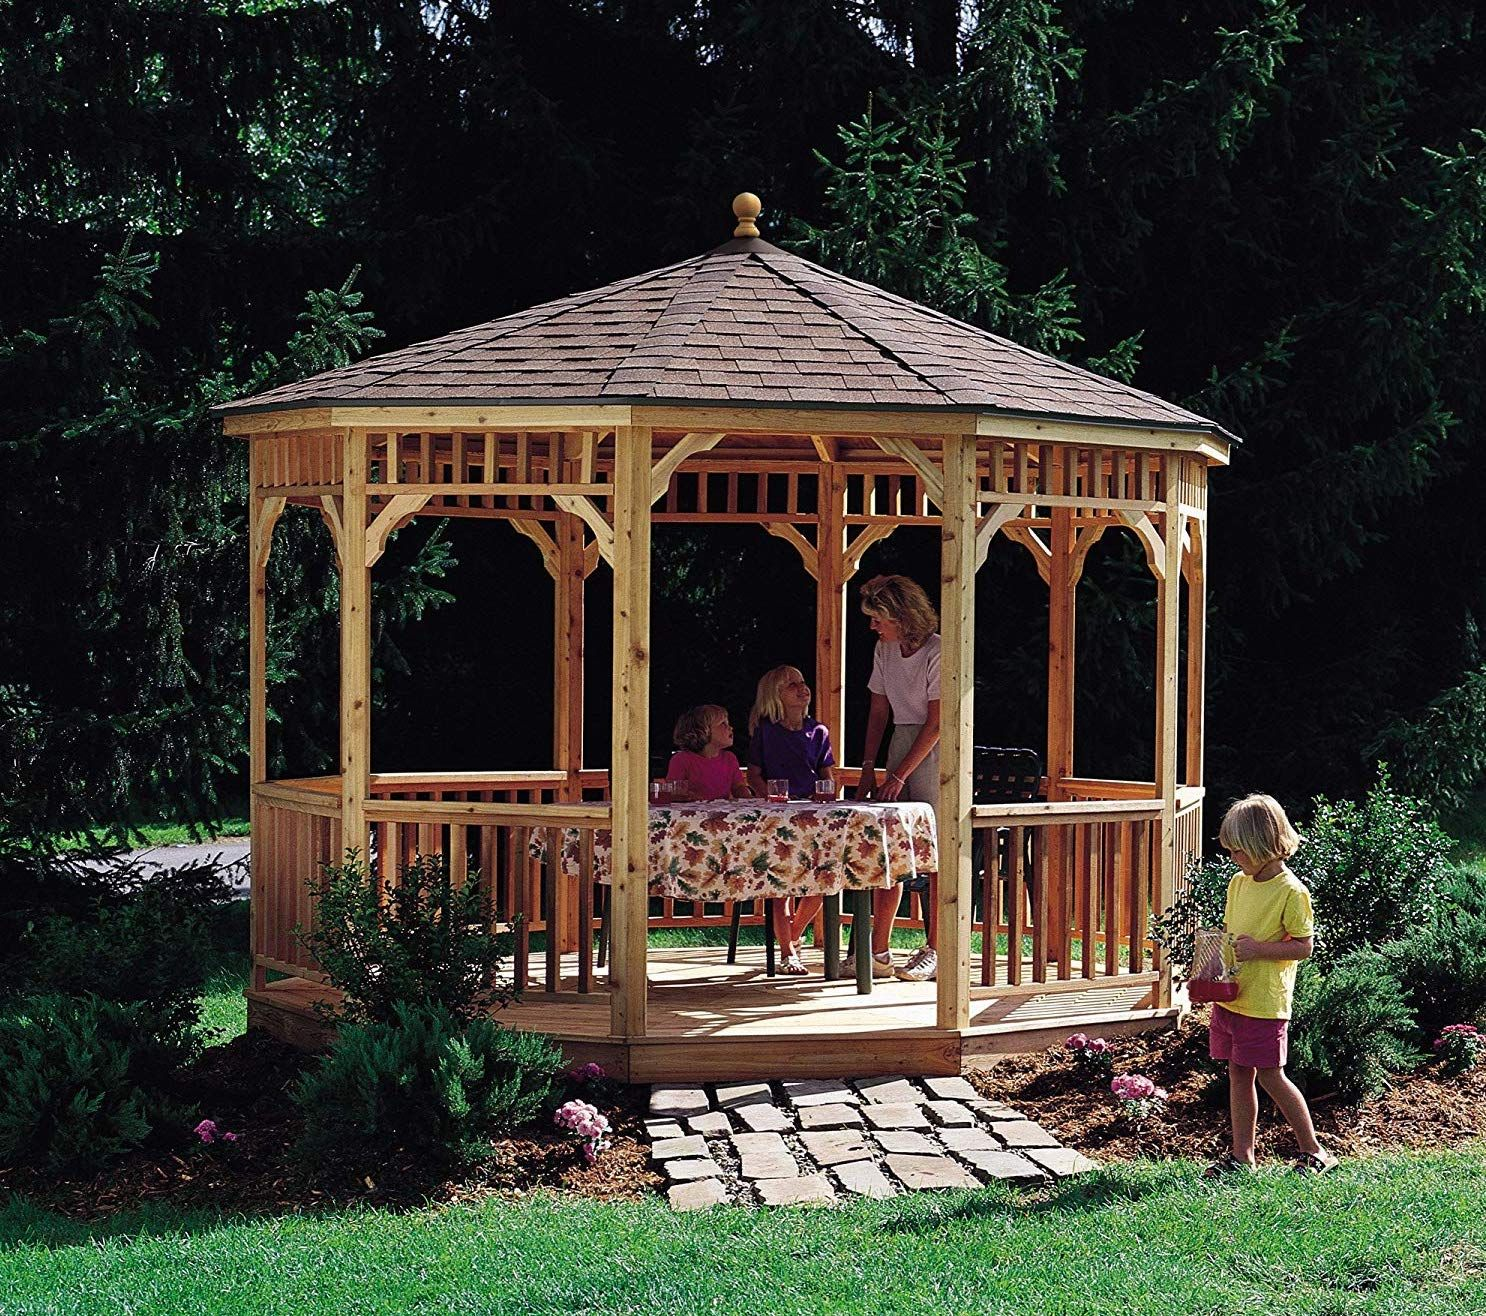 Wooden Gazebo With Images Round Gazebo Patio Gazebo Wood Patio